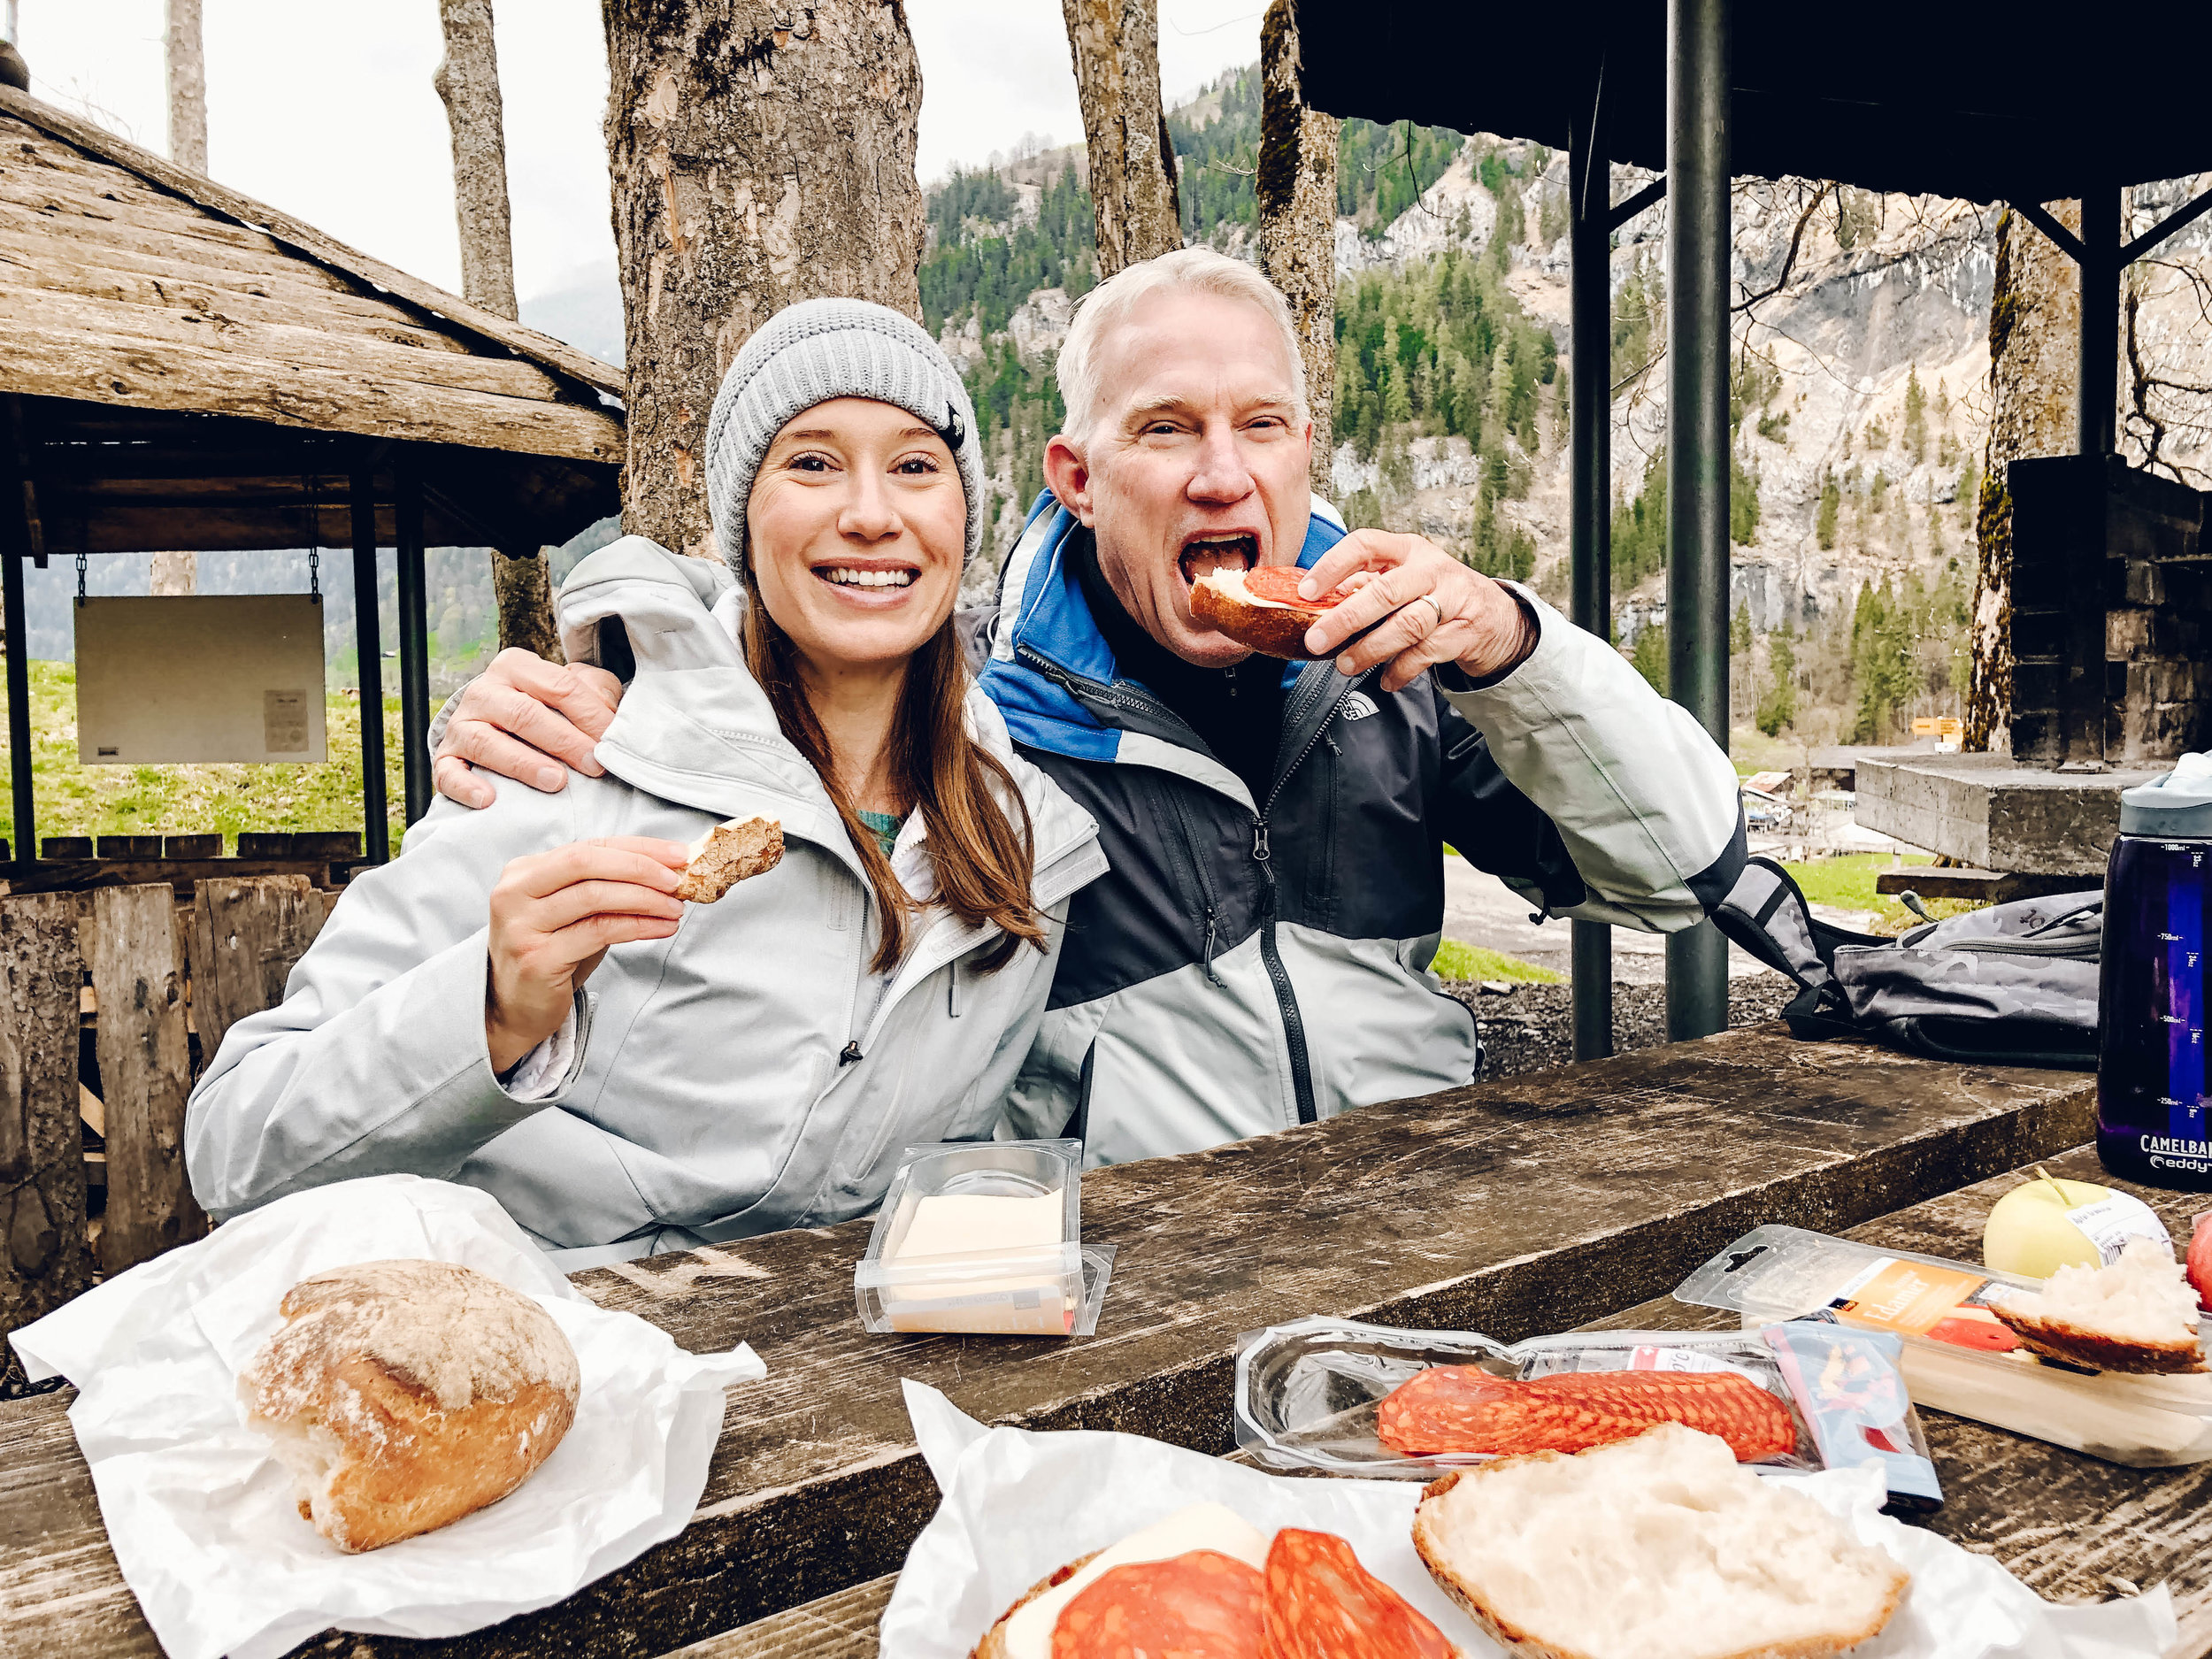 Eating lunch with Dad while on hike in Lauterbrunnen Switzerland